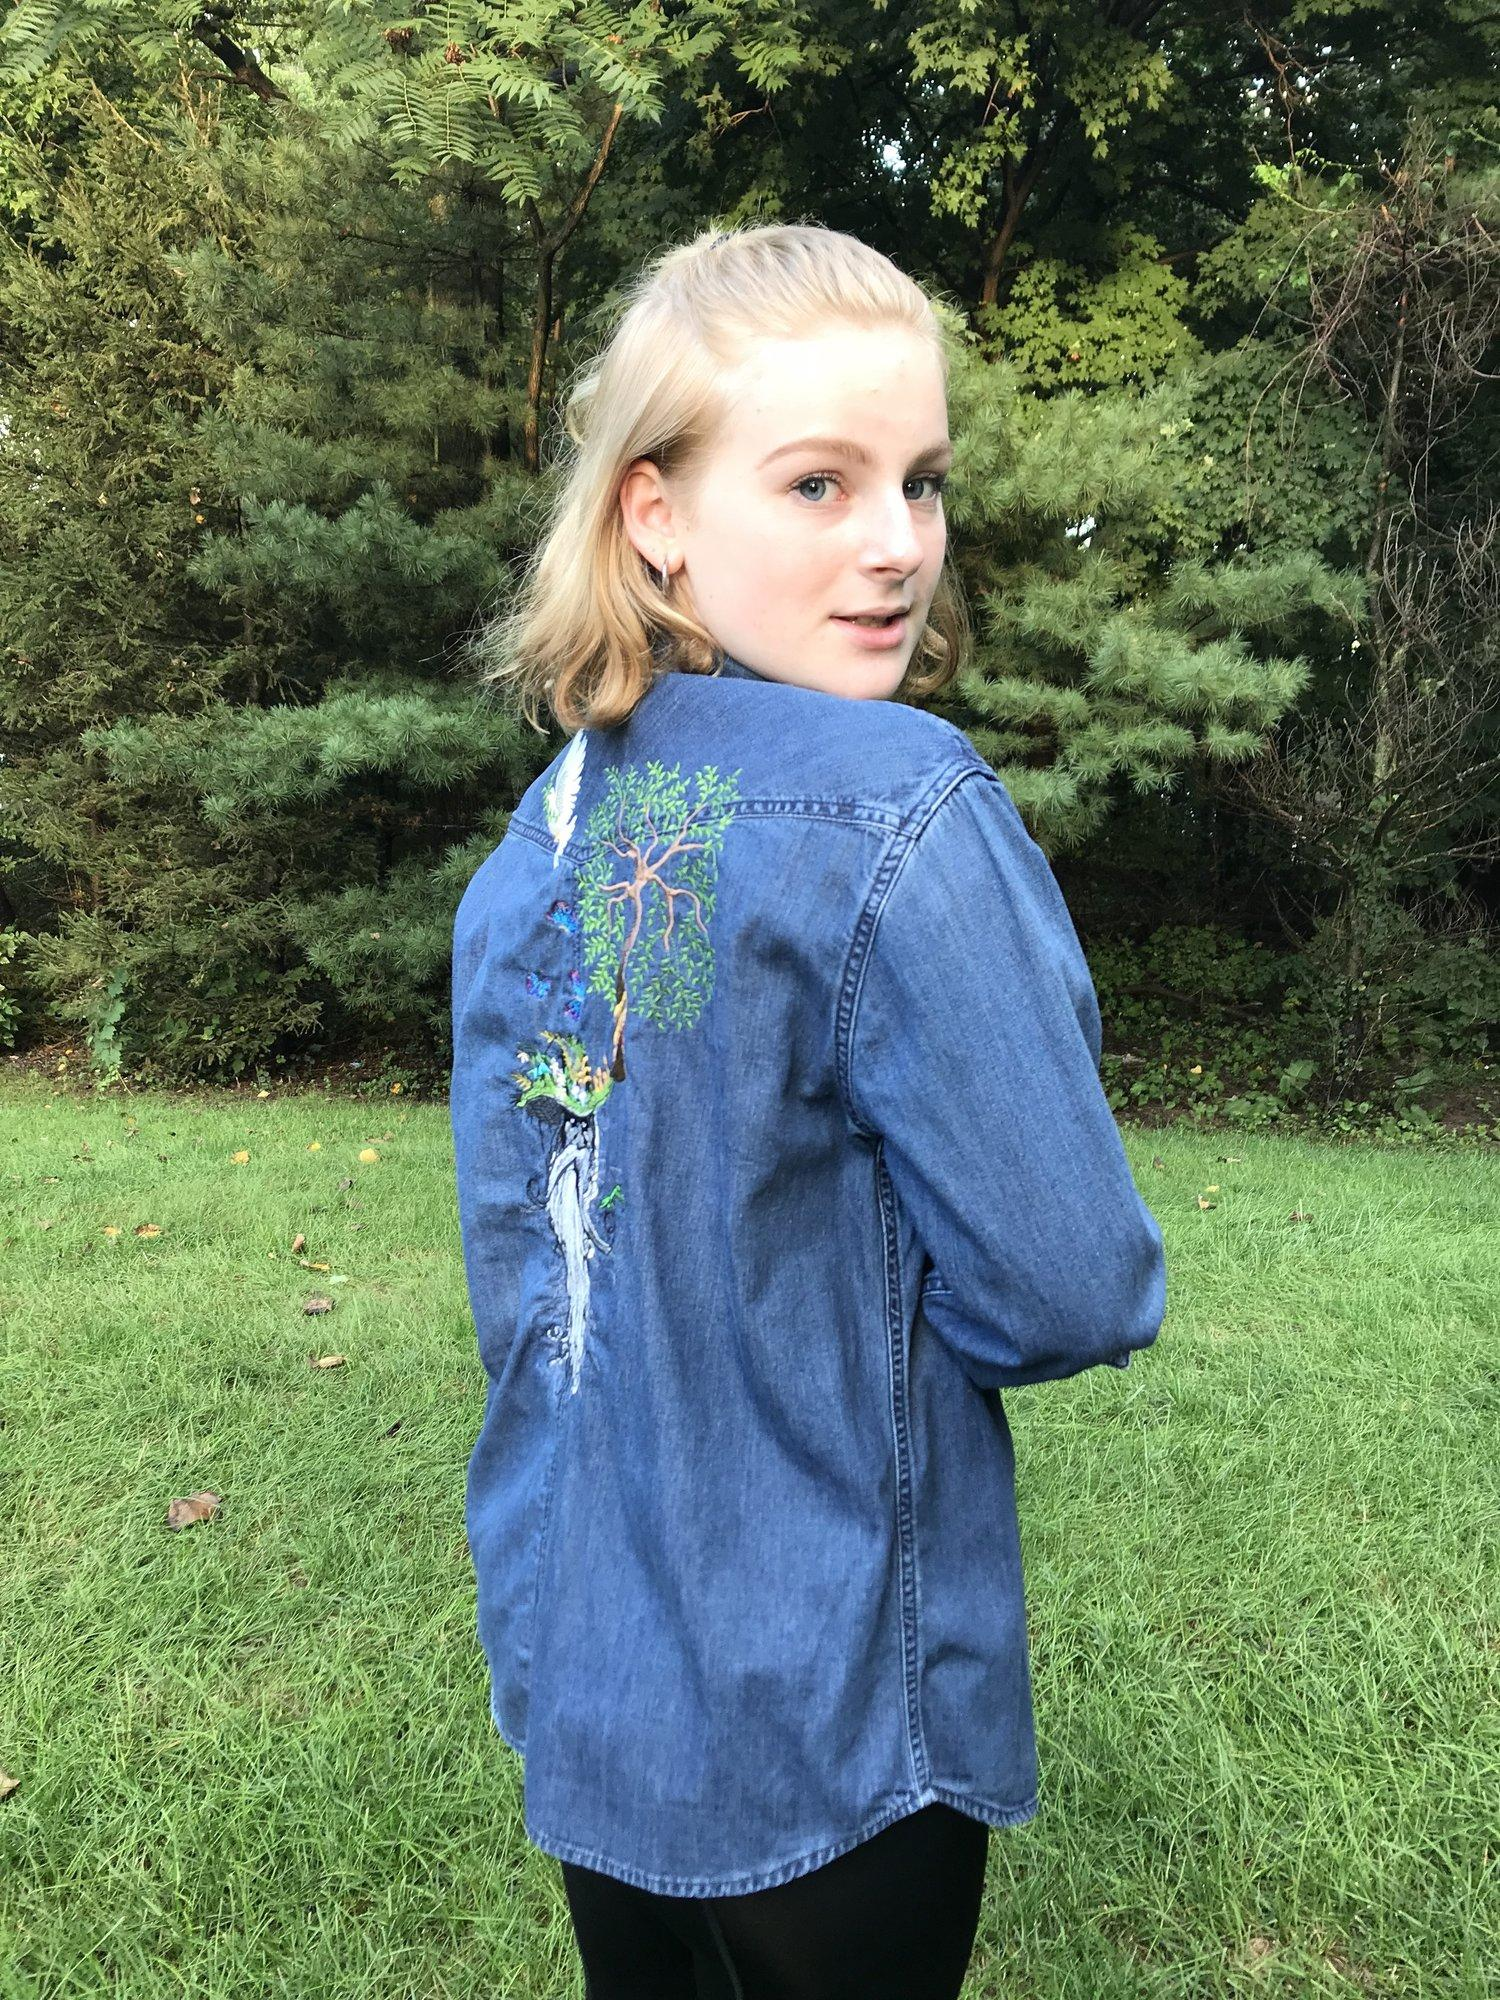 Embroidered jeans jacket with Root man design